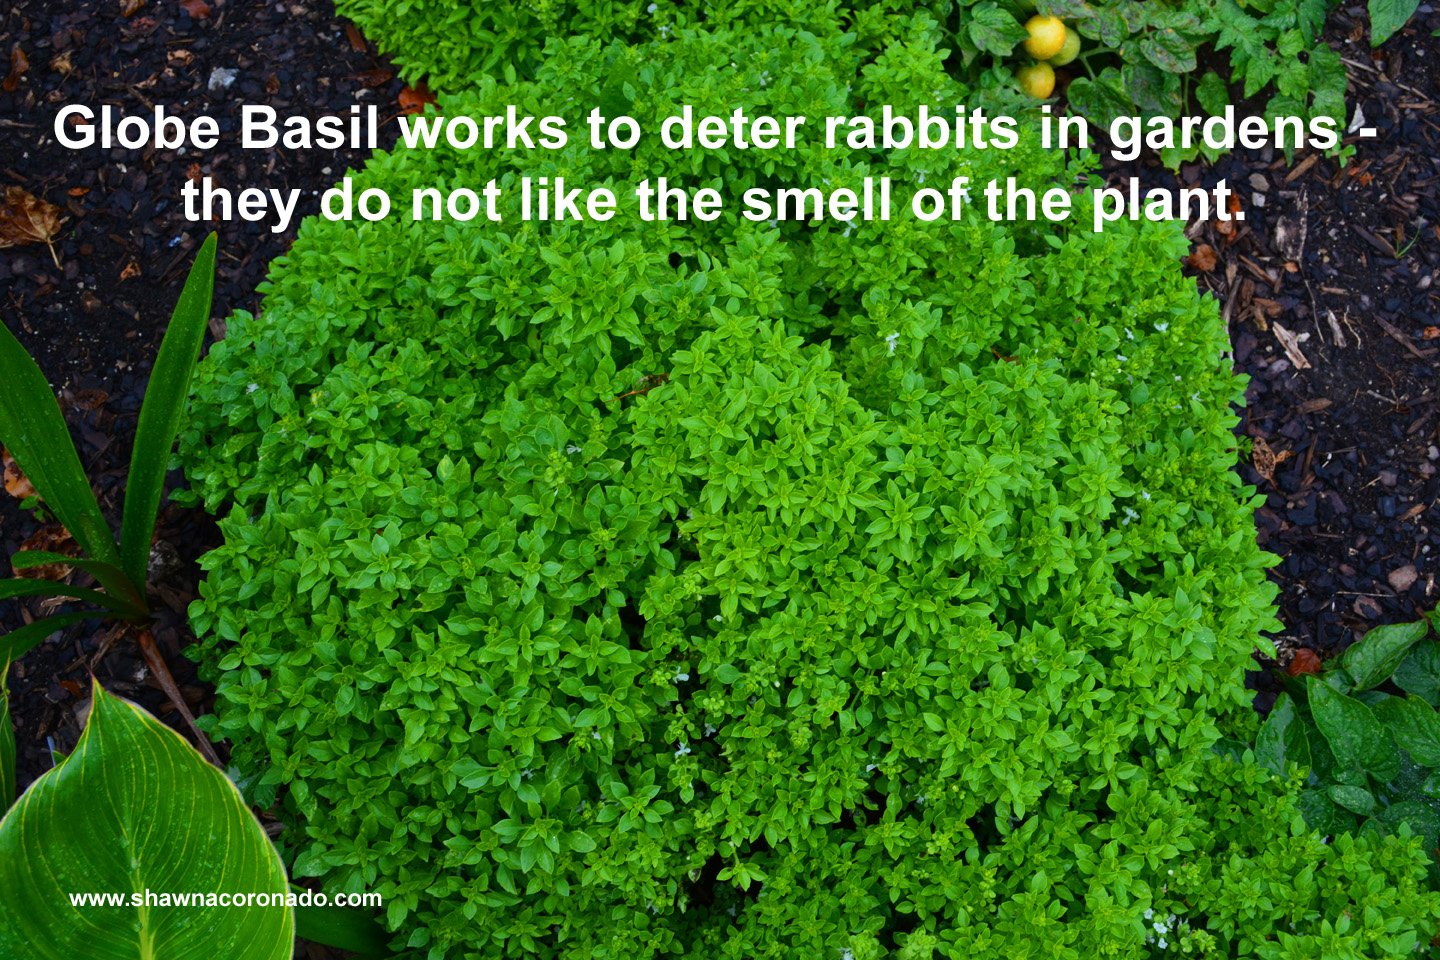 Globe Basil Is A Rabbit Resistant Plant In The Garden